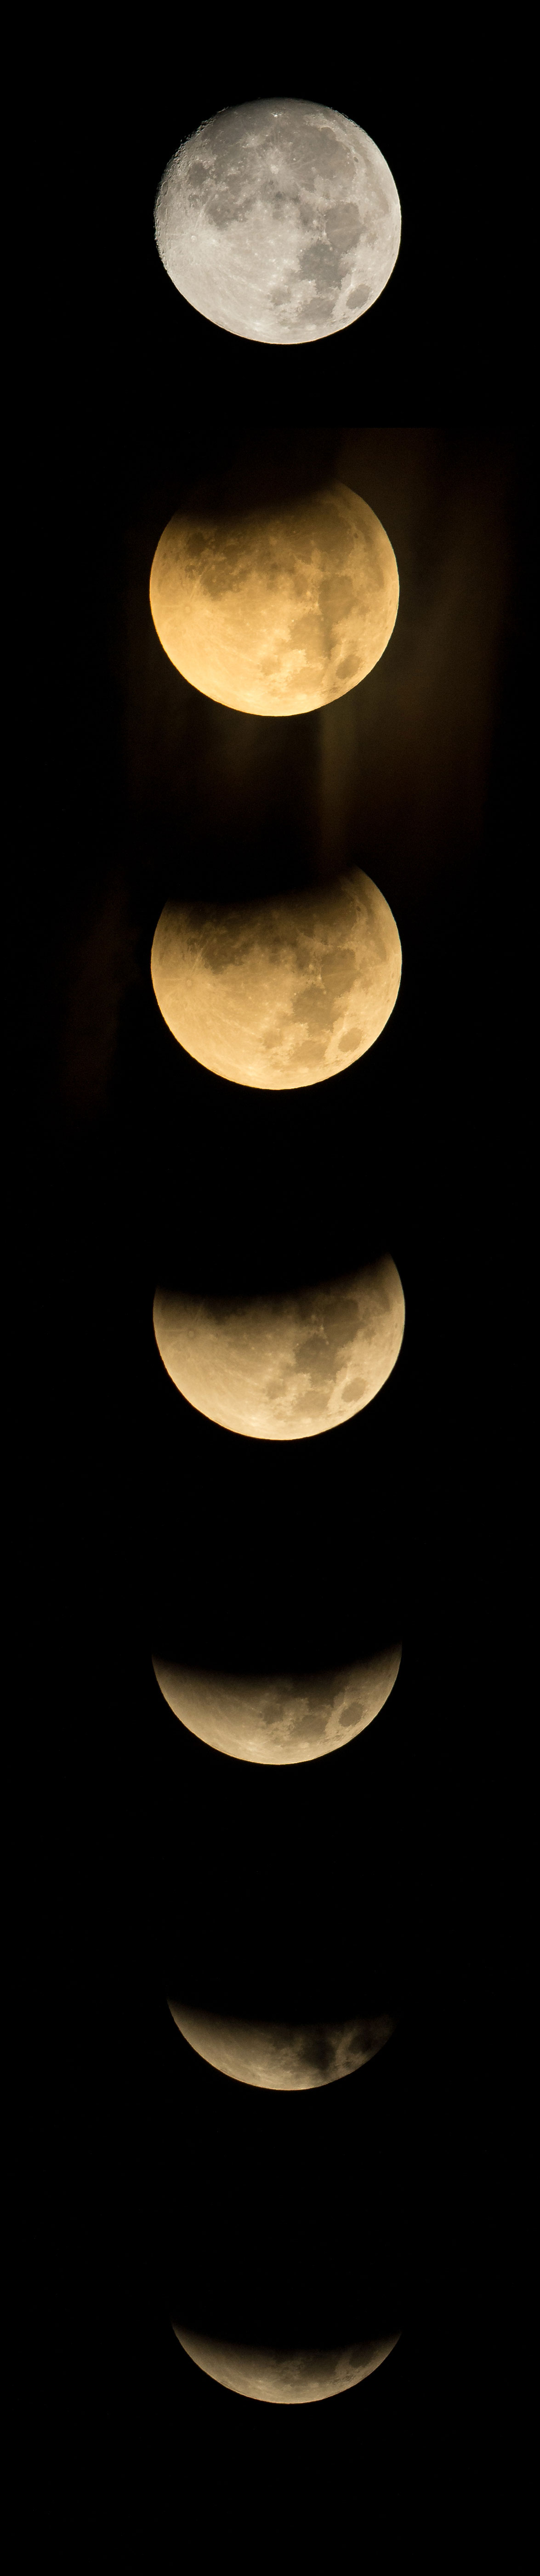 Seven images showing the shadow of Earth progressively covering more of the Moon until it is just a sliver in the sky.